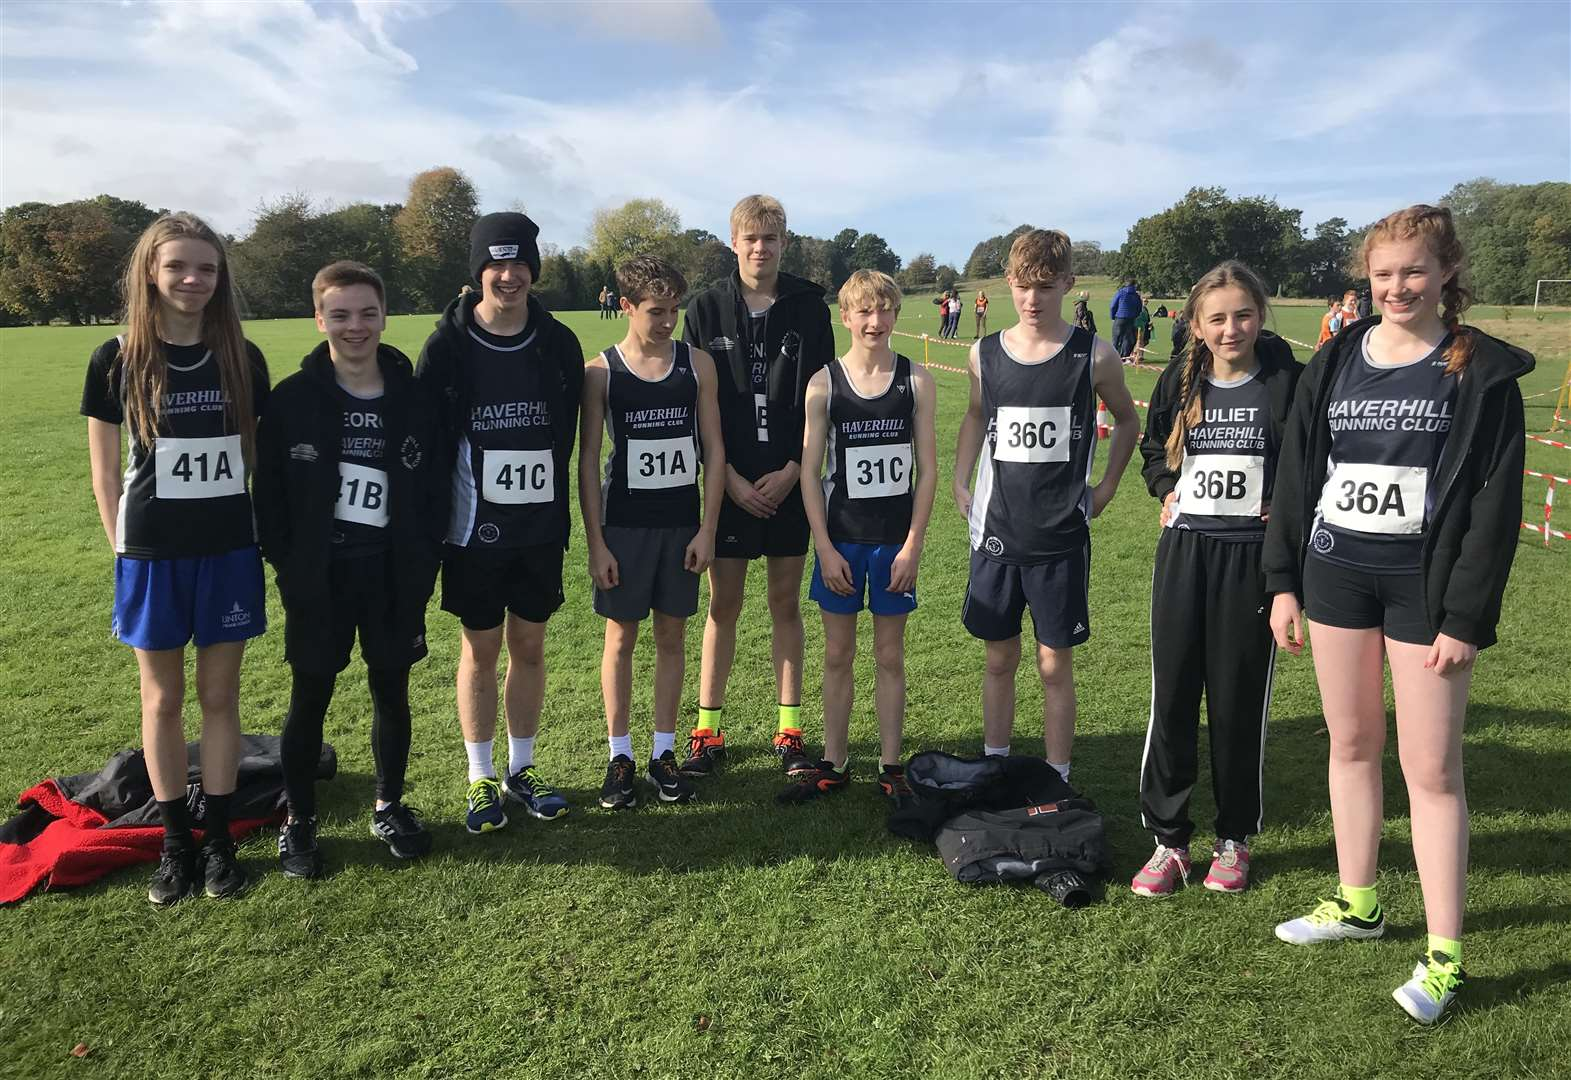 Juniors take part in Ipswich Jaffa relay for first ever time